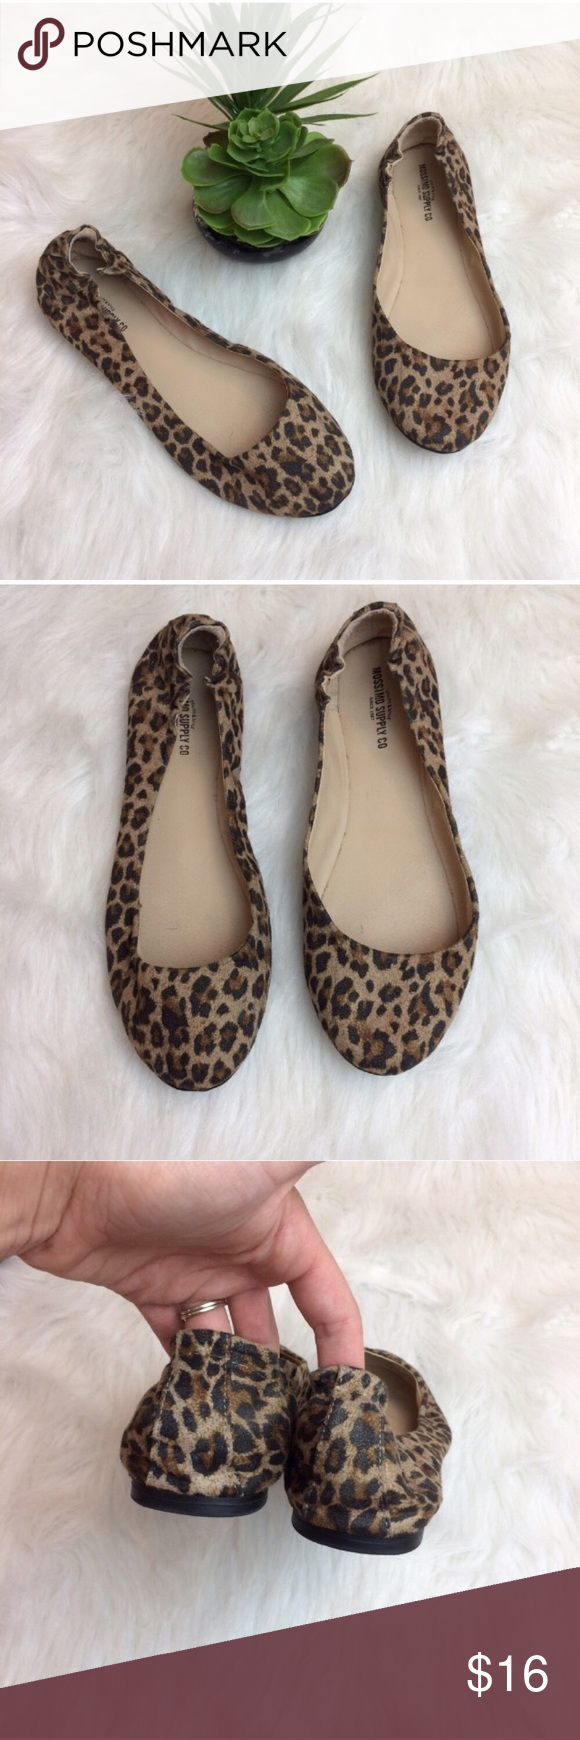 507bf469e708 Mossimo Supply Co. Leopard Flats Mossimo leopard print flats. Size 10.  Excellent condition. Mossimo Supply Co Shoes Flats & Loafers